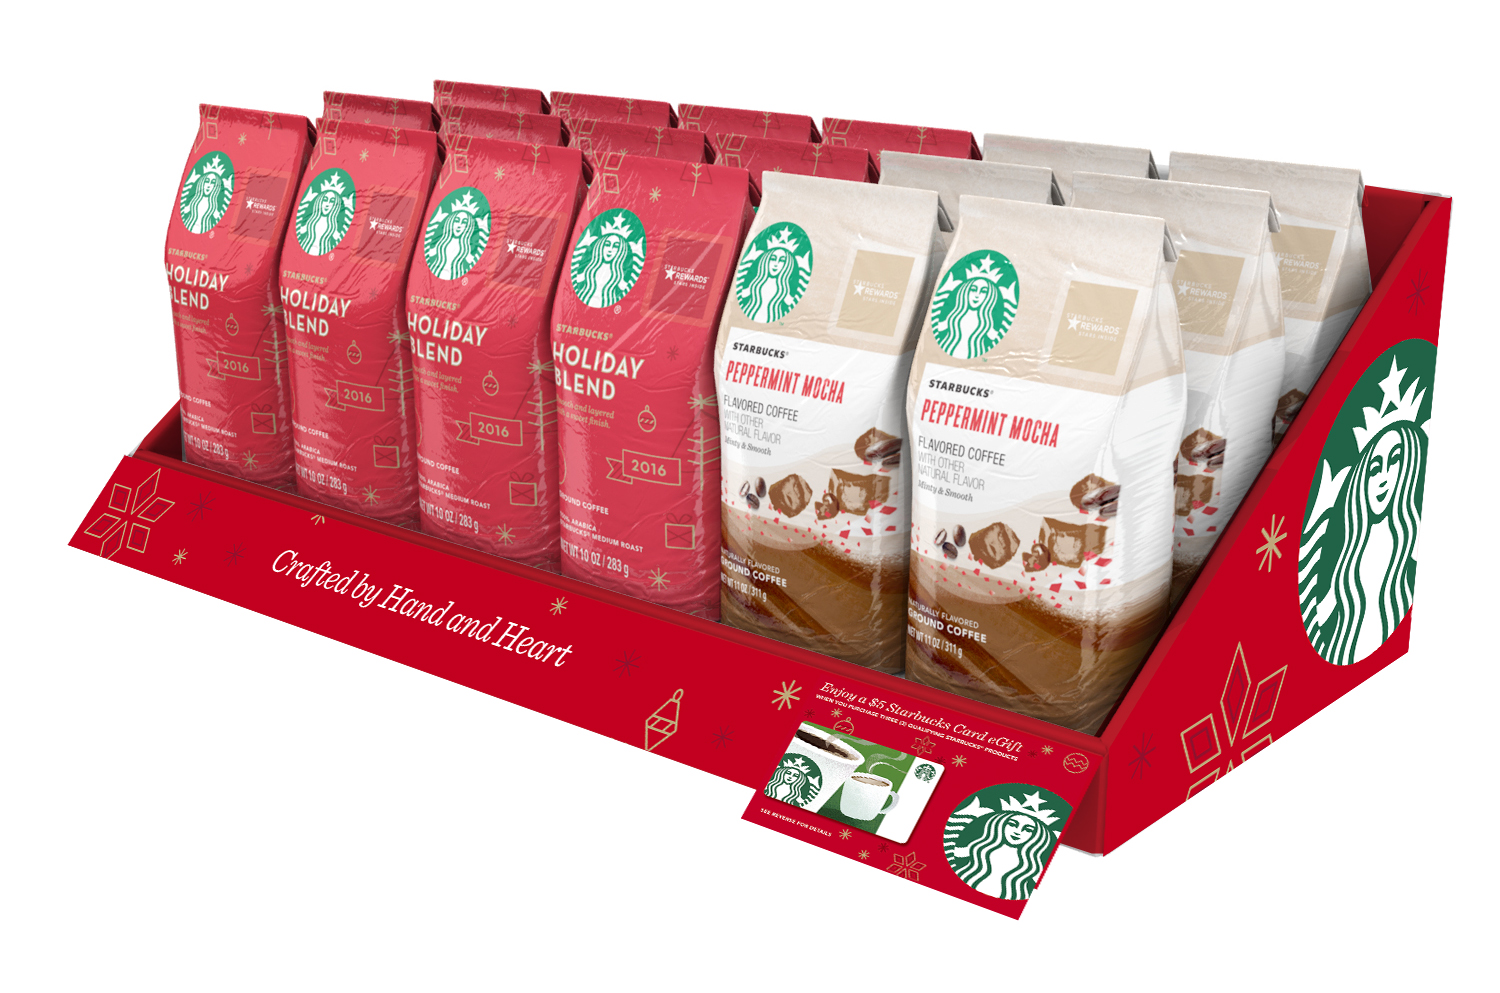 Starbucks_Mock_Shelf_02